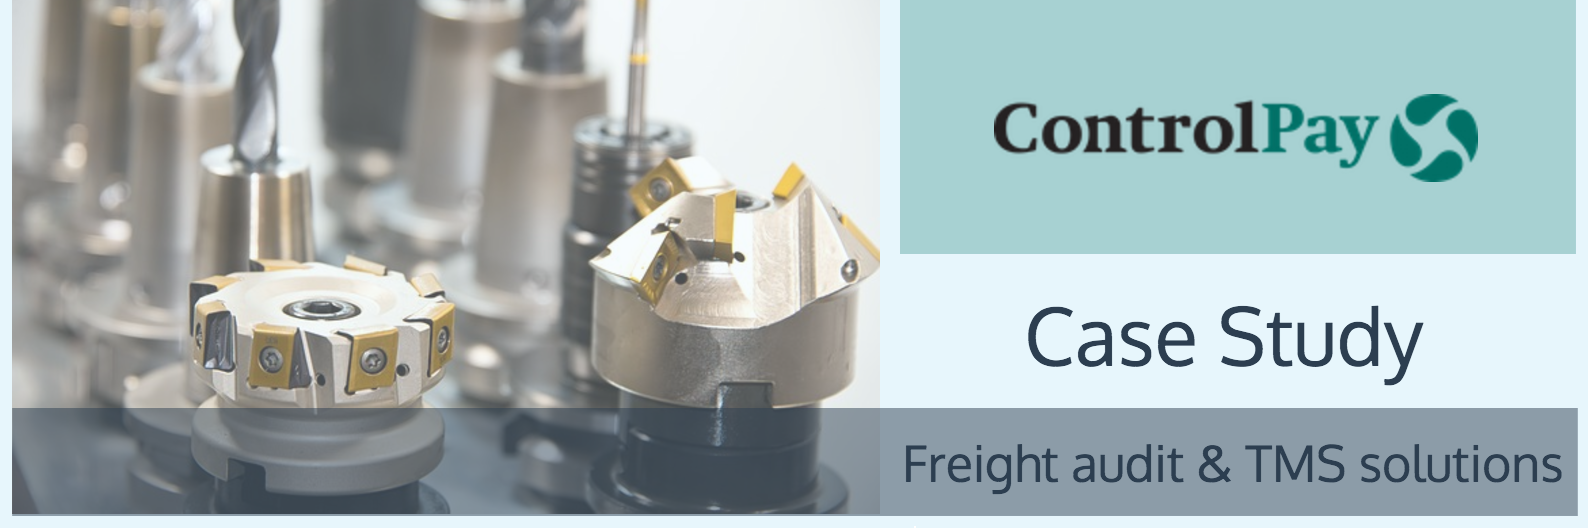 Controlpay. Freight Audit: International manufacturer case study